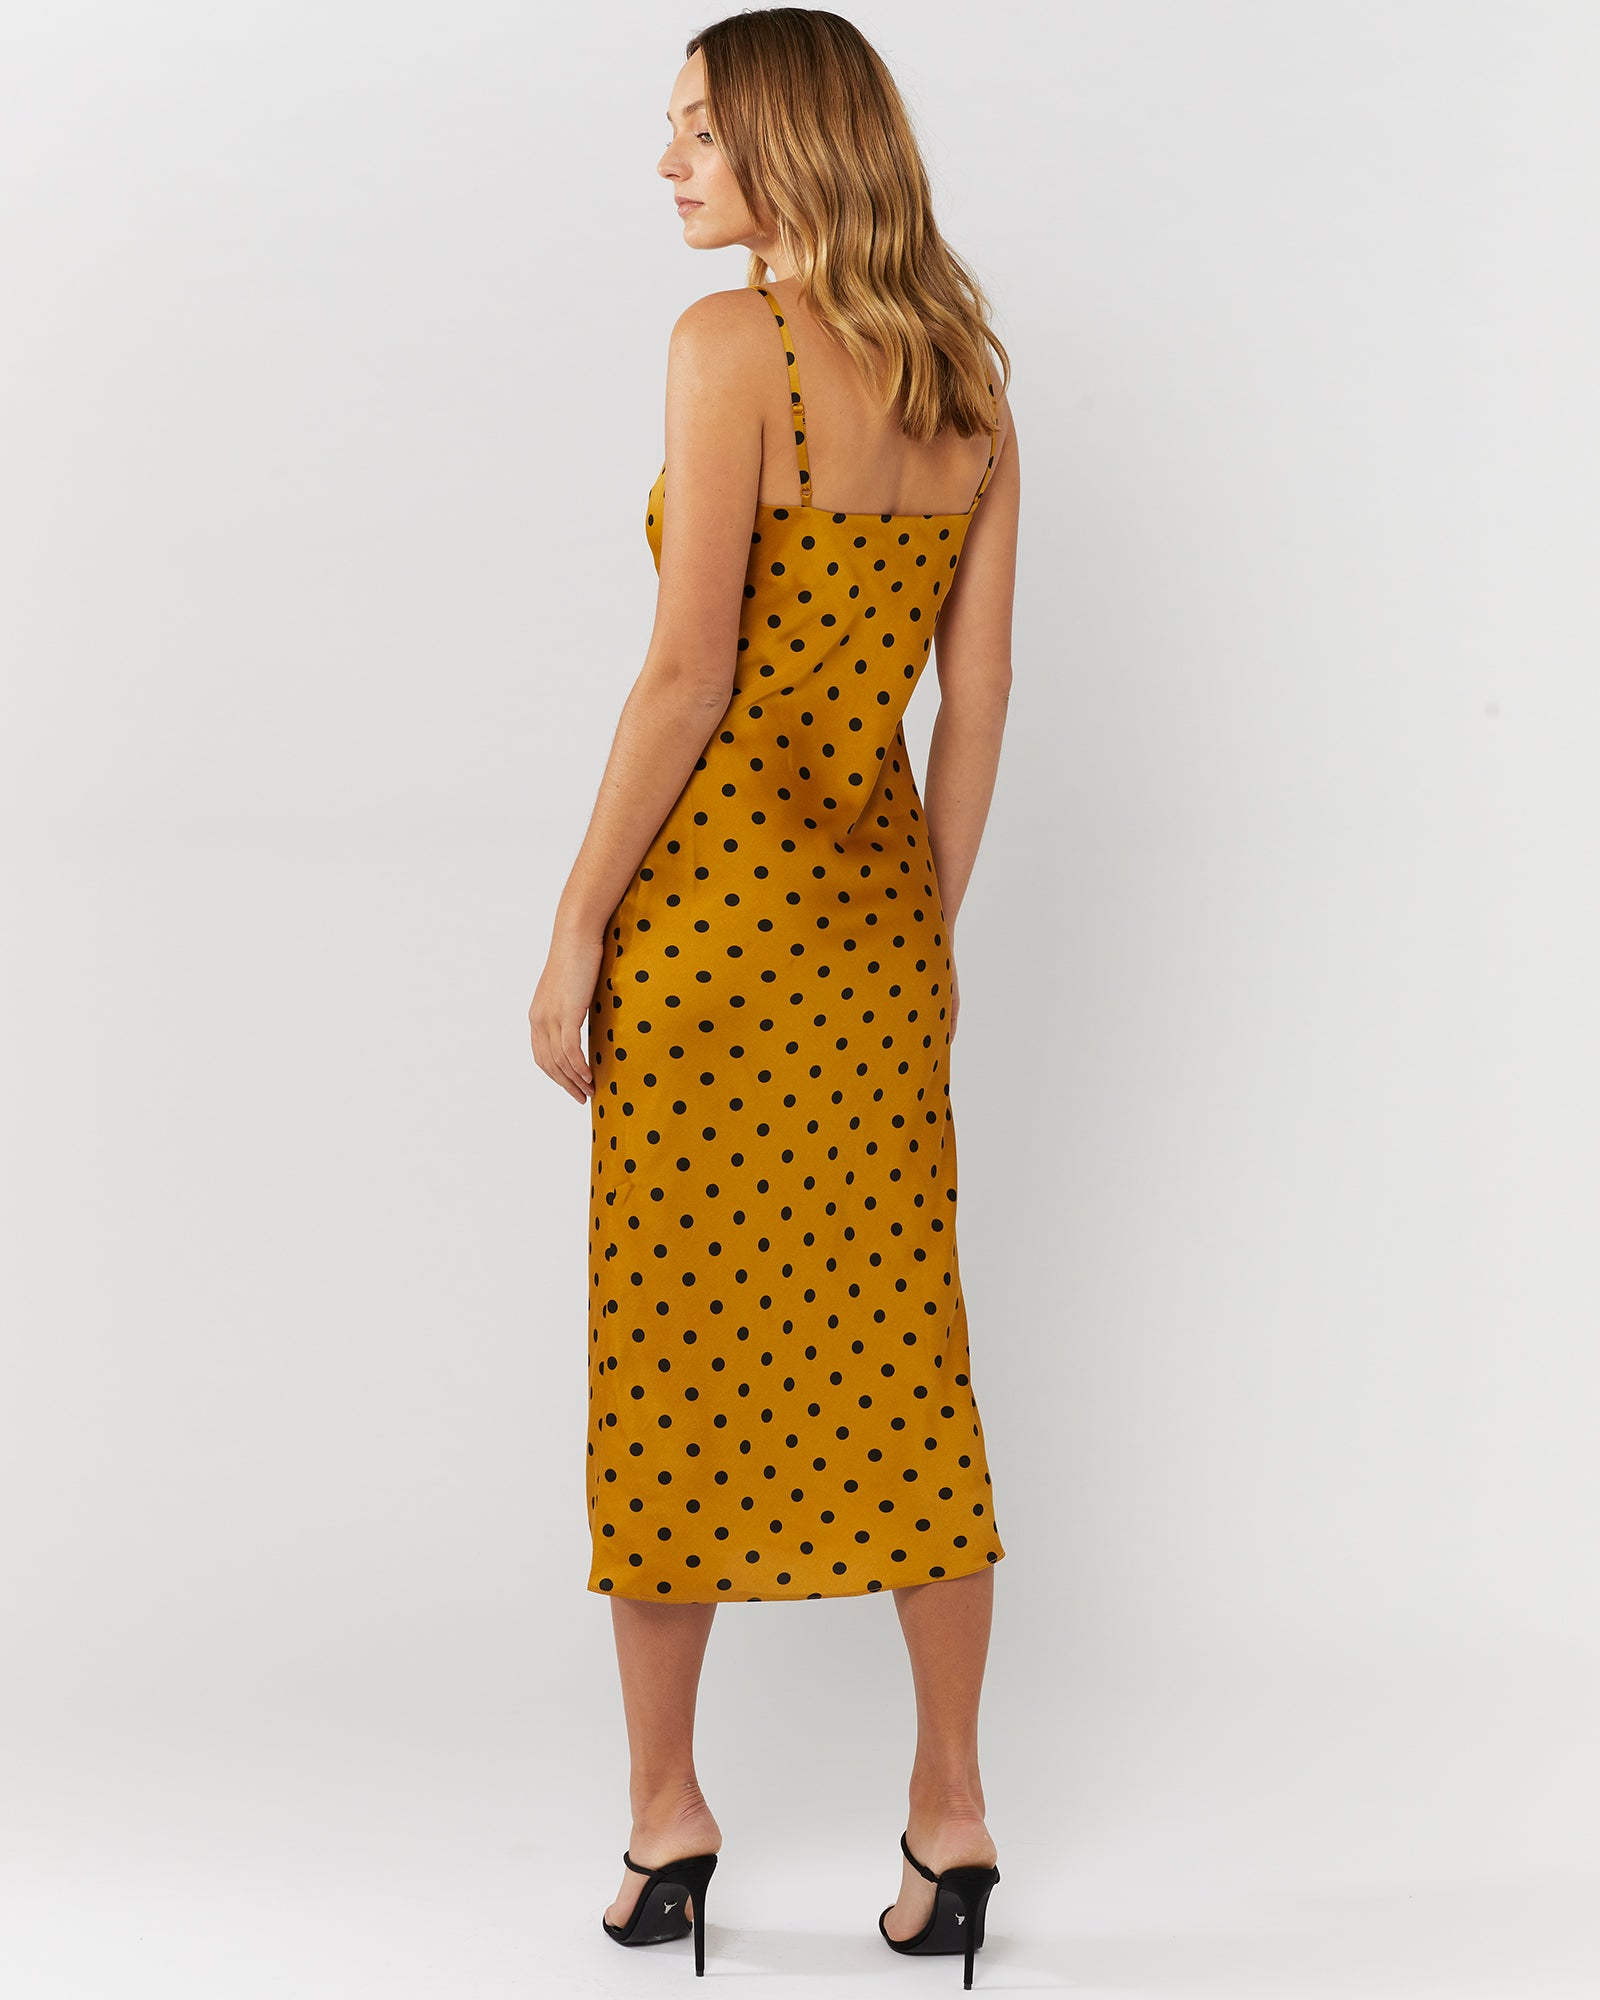 SMALL TALK SLIP DRESS - GOLD SPOT